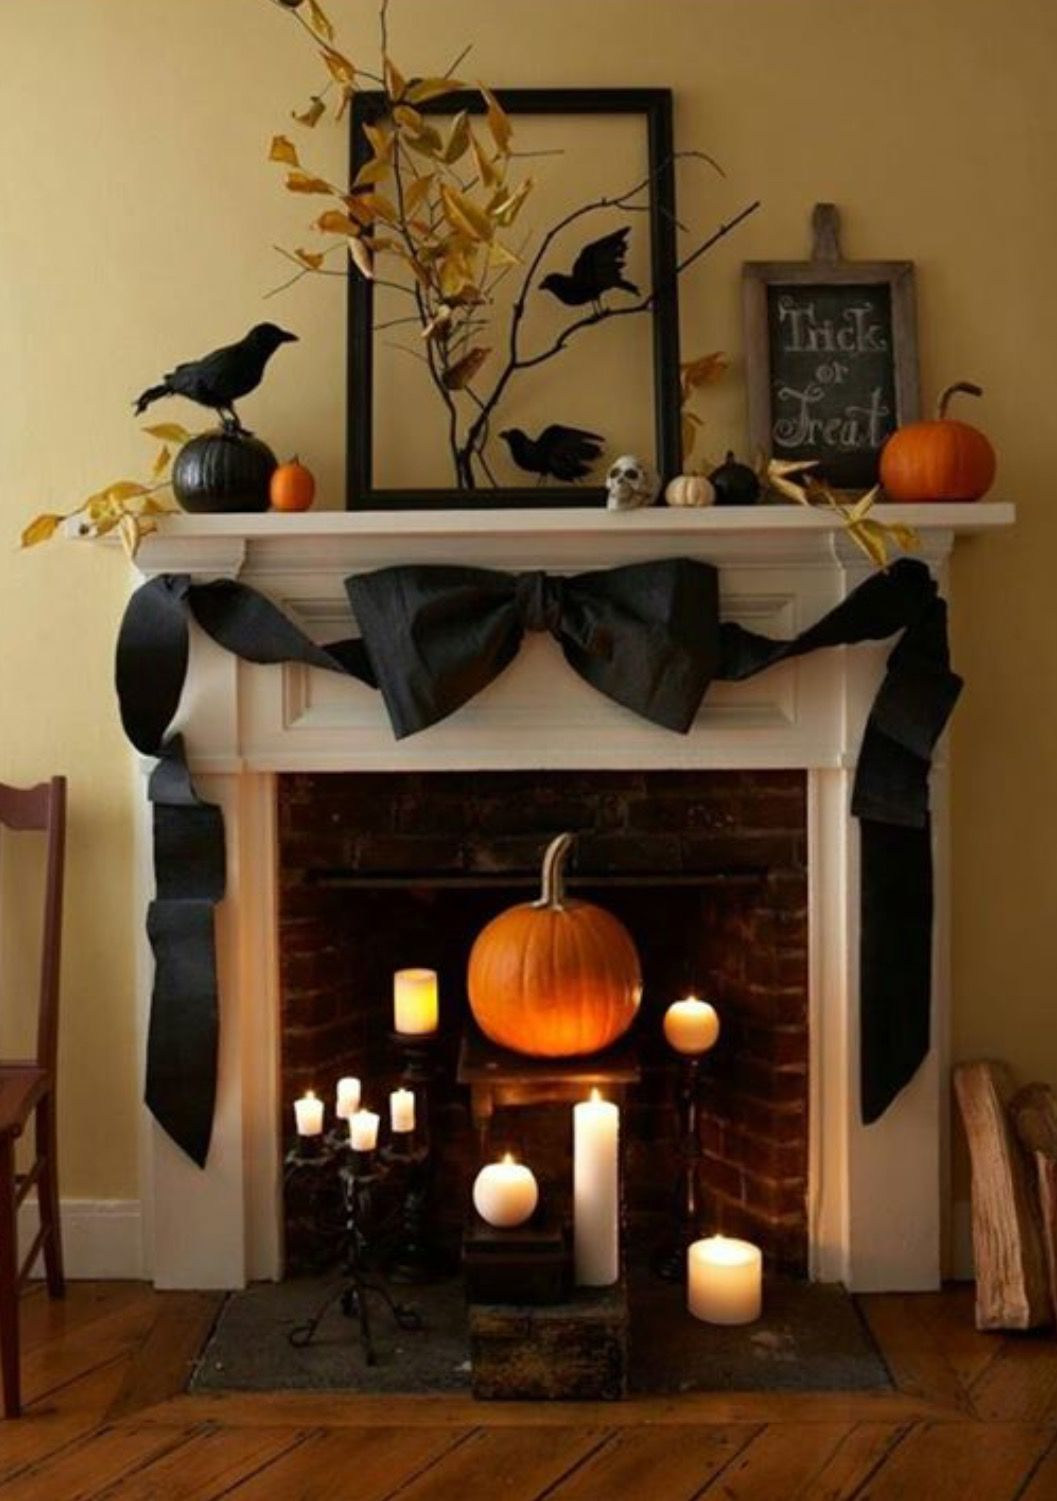 Love the different levels of candles and the pumpkin in the - Diy Indoor Halloween Decorations